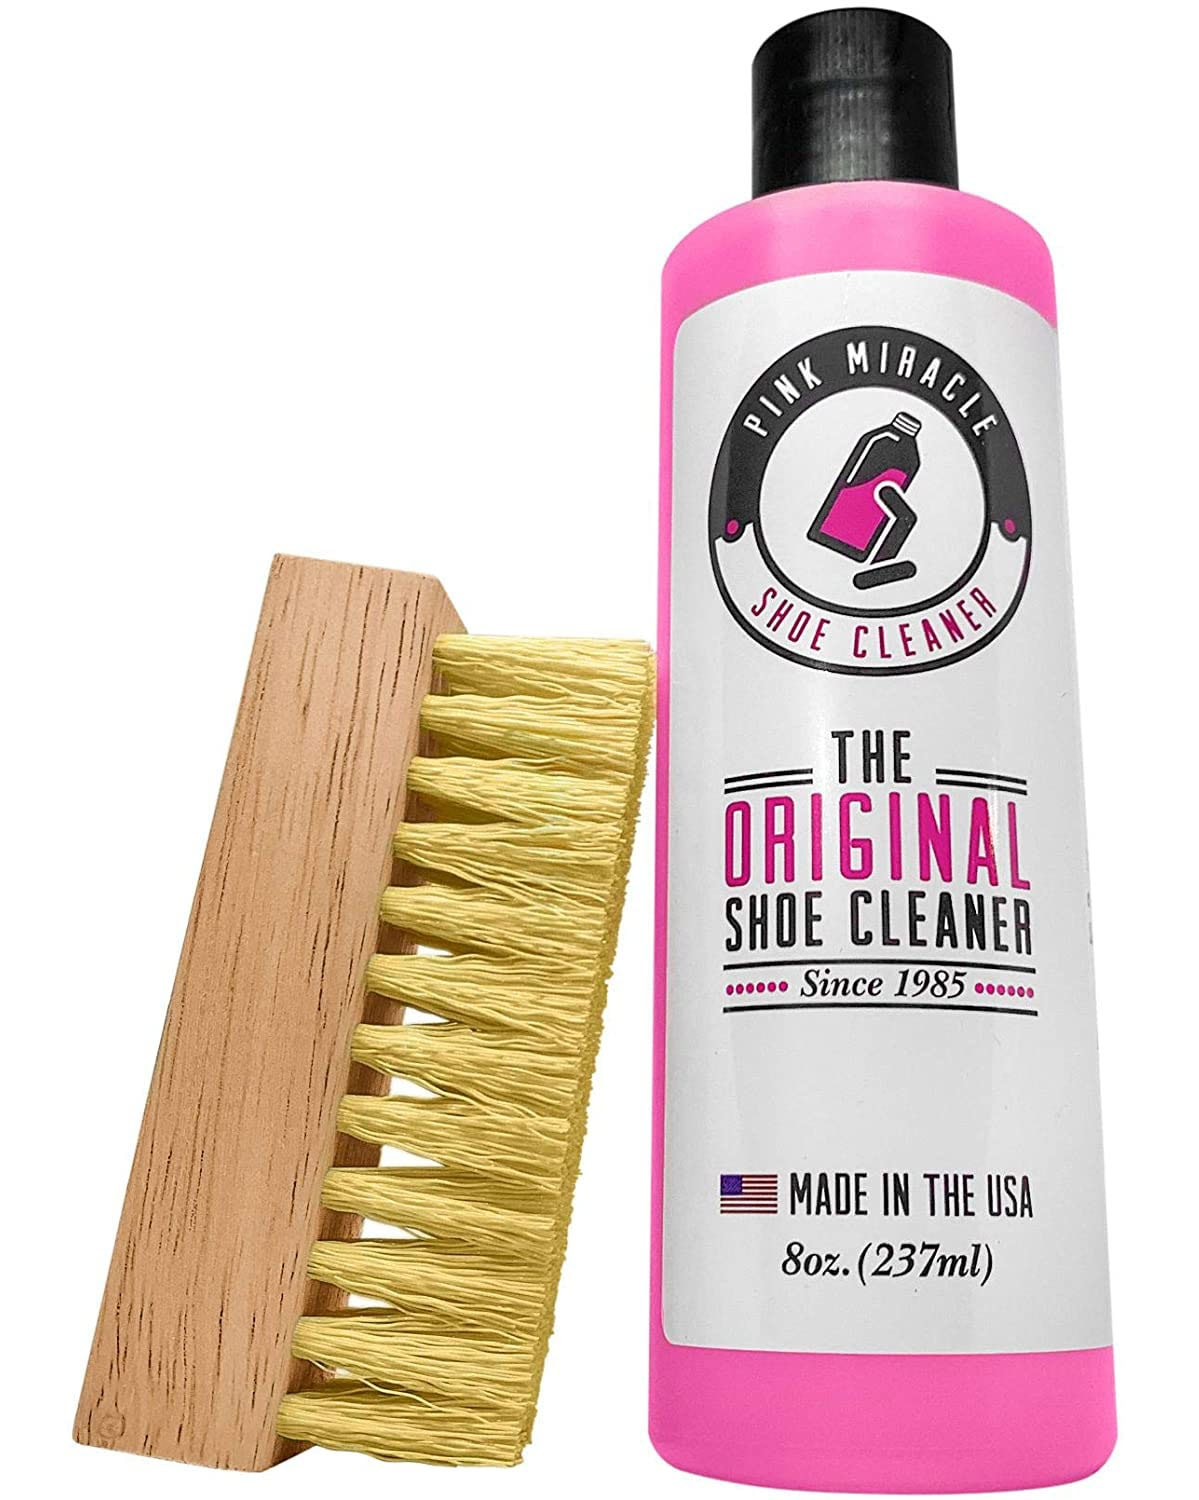 The Pink Miracle shoe cleaner is a safe concentrate all-in-one shoe cleaner and conditioner that contains saddle soap, gentle oils, and conditioners